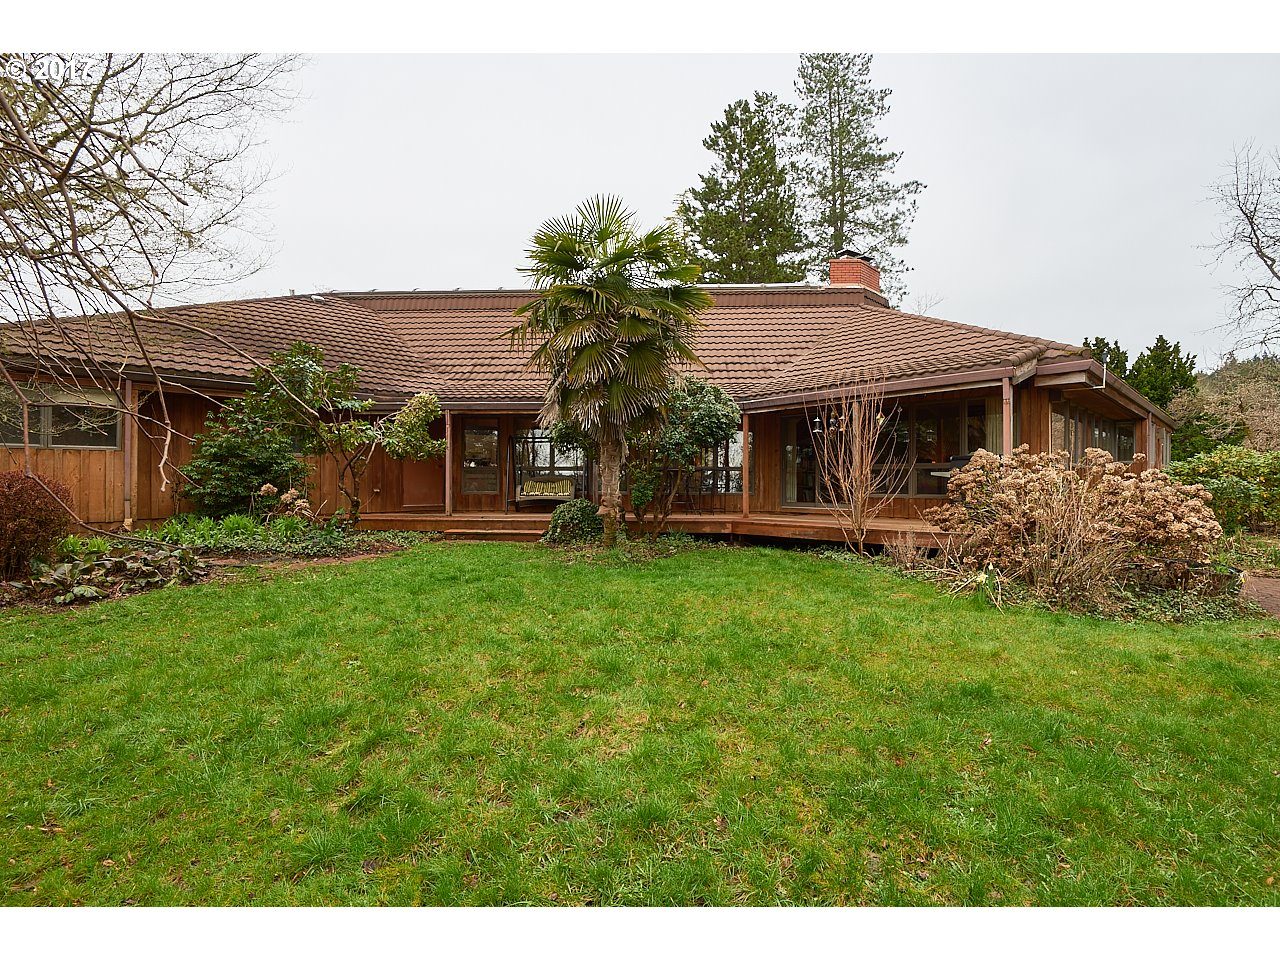 17680 NW WILLIS RD, McMinnville, OR 97128